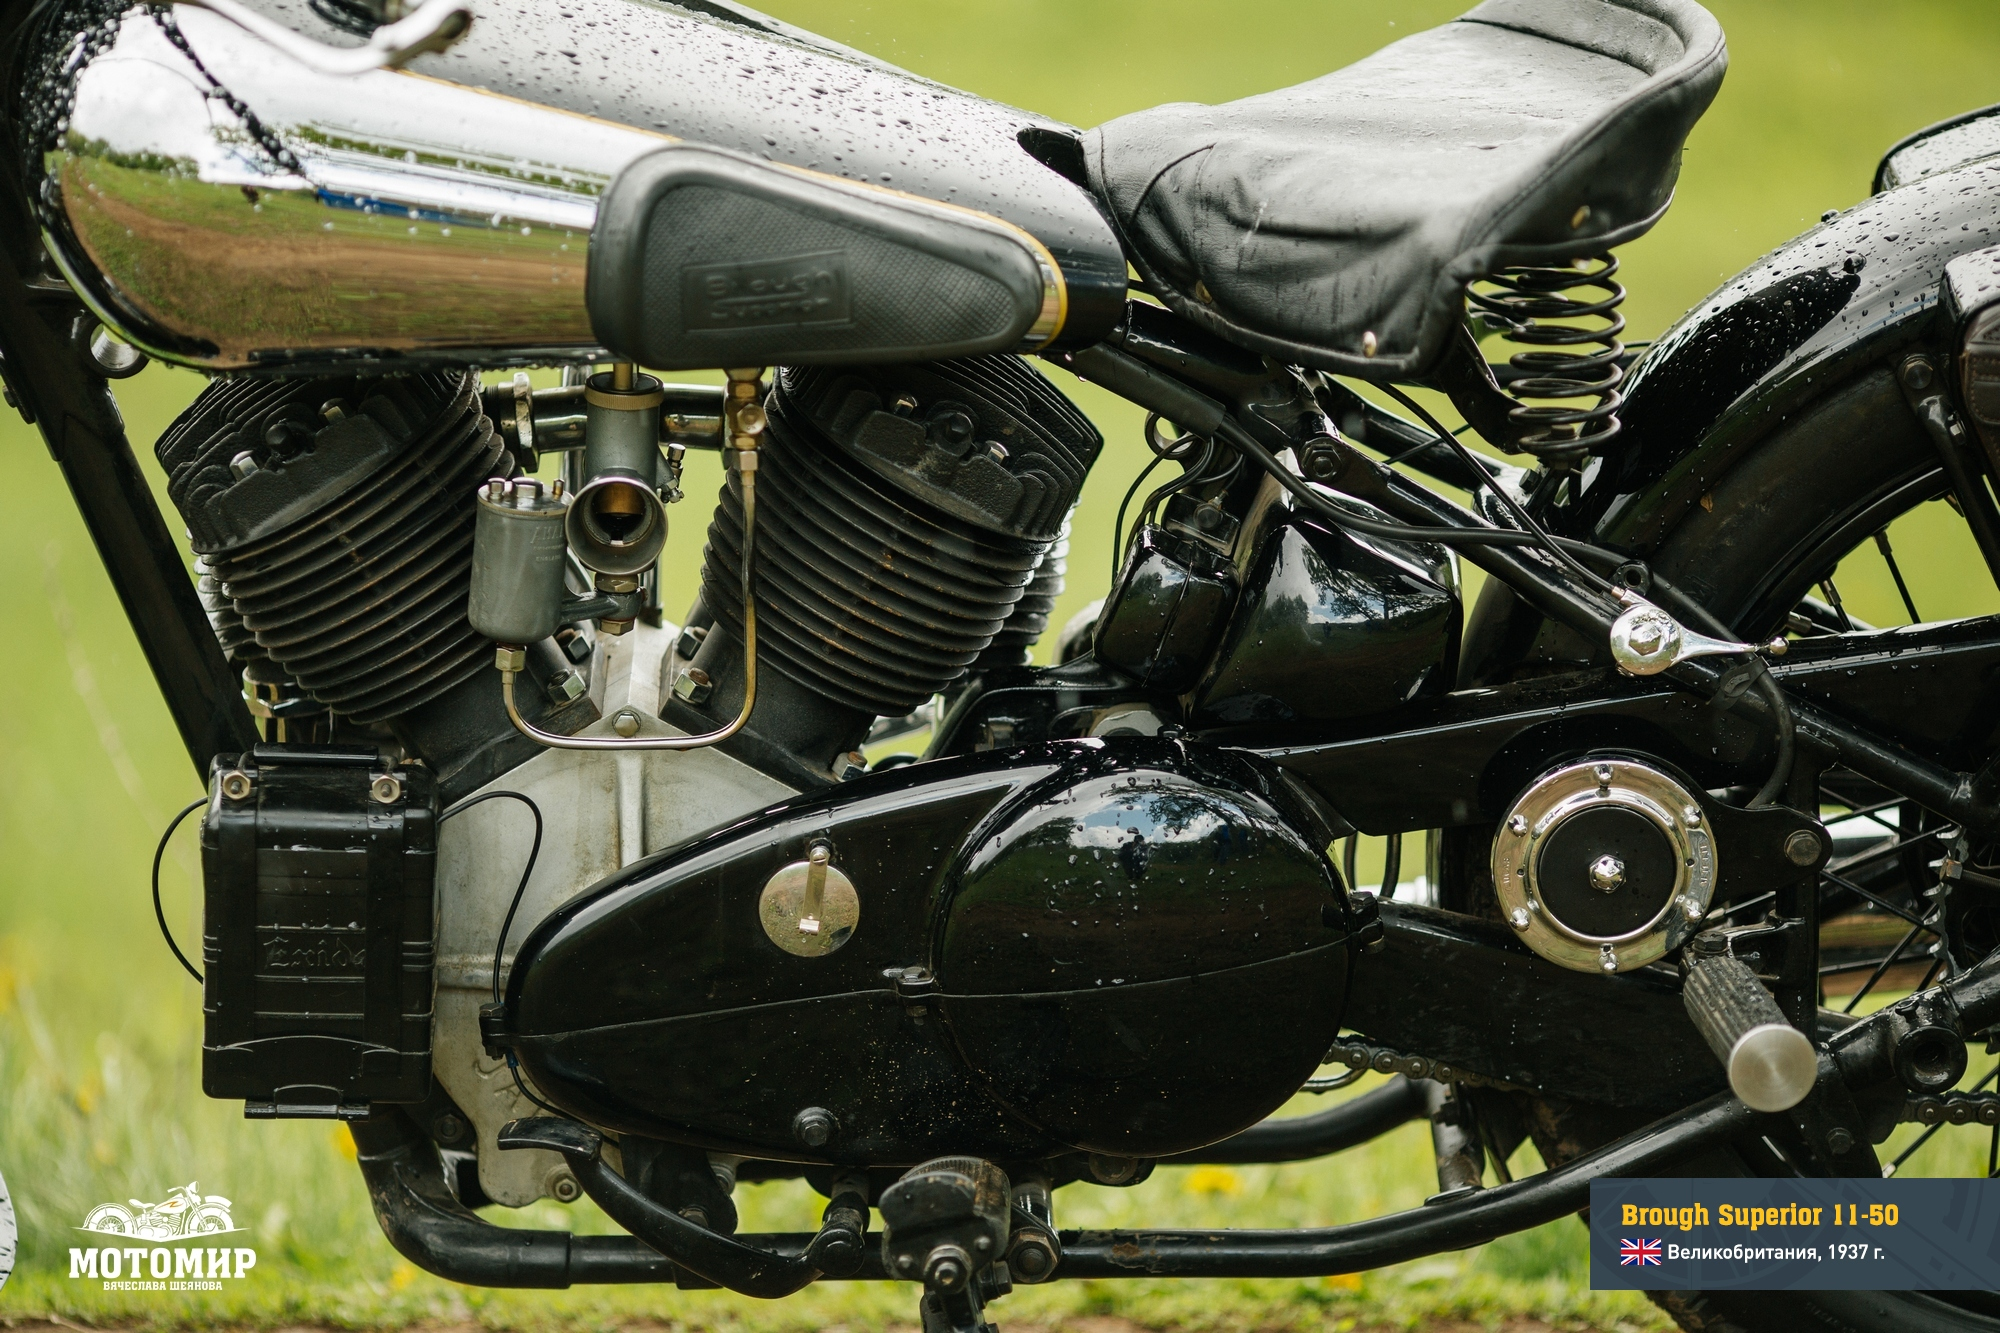 brough-superior-11-50-201509-web-24